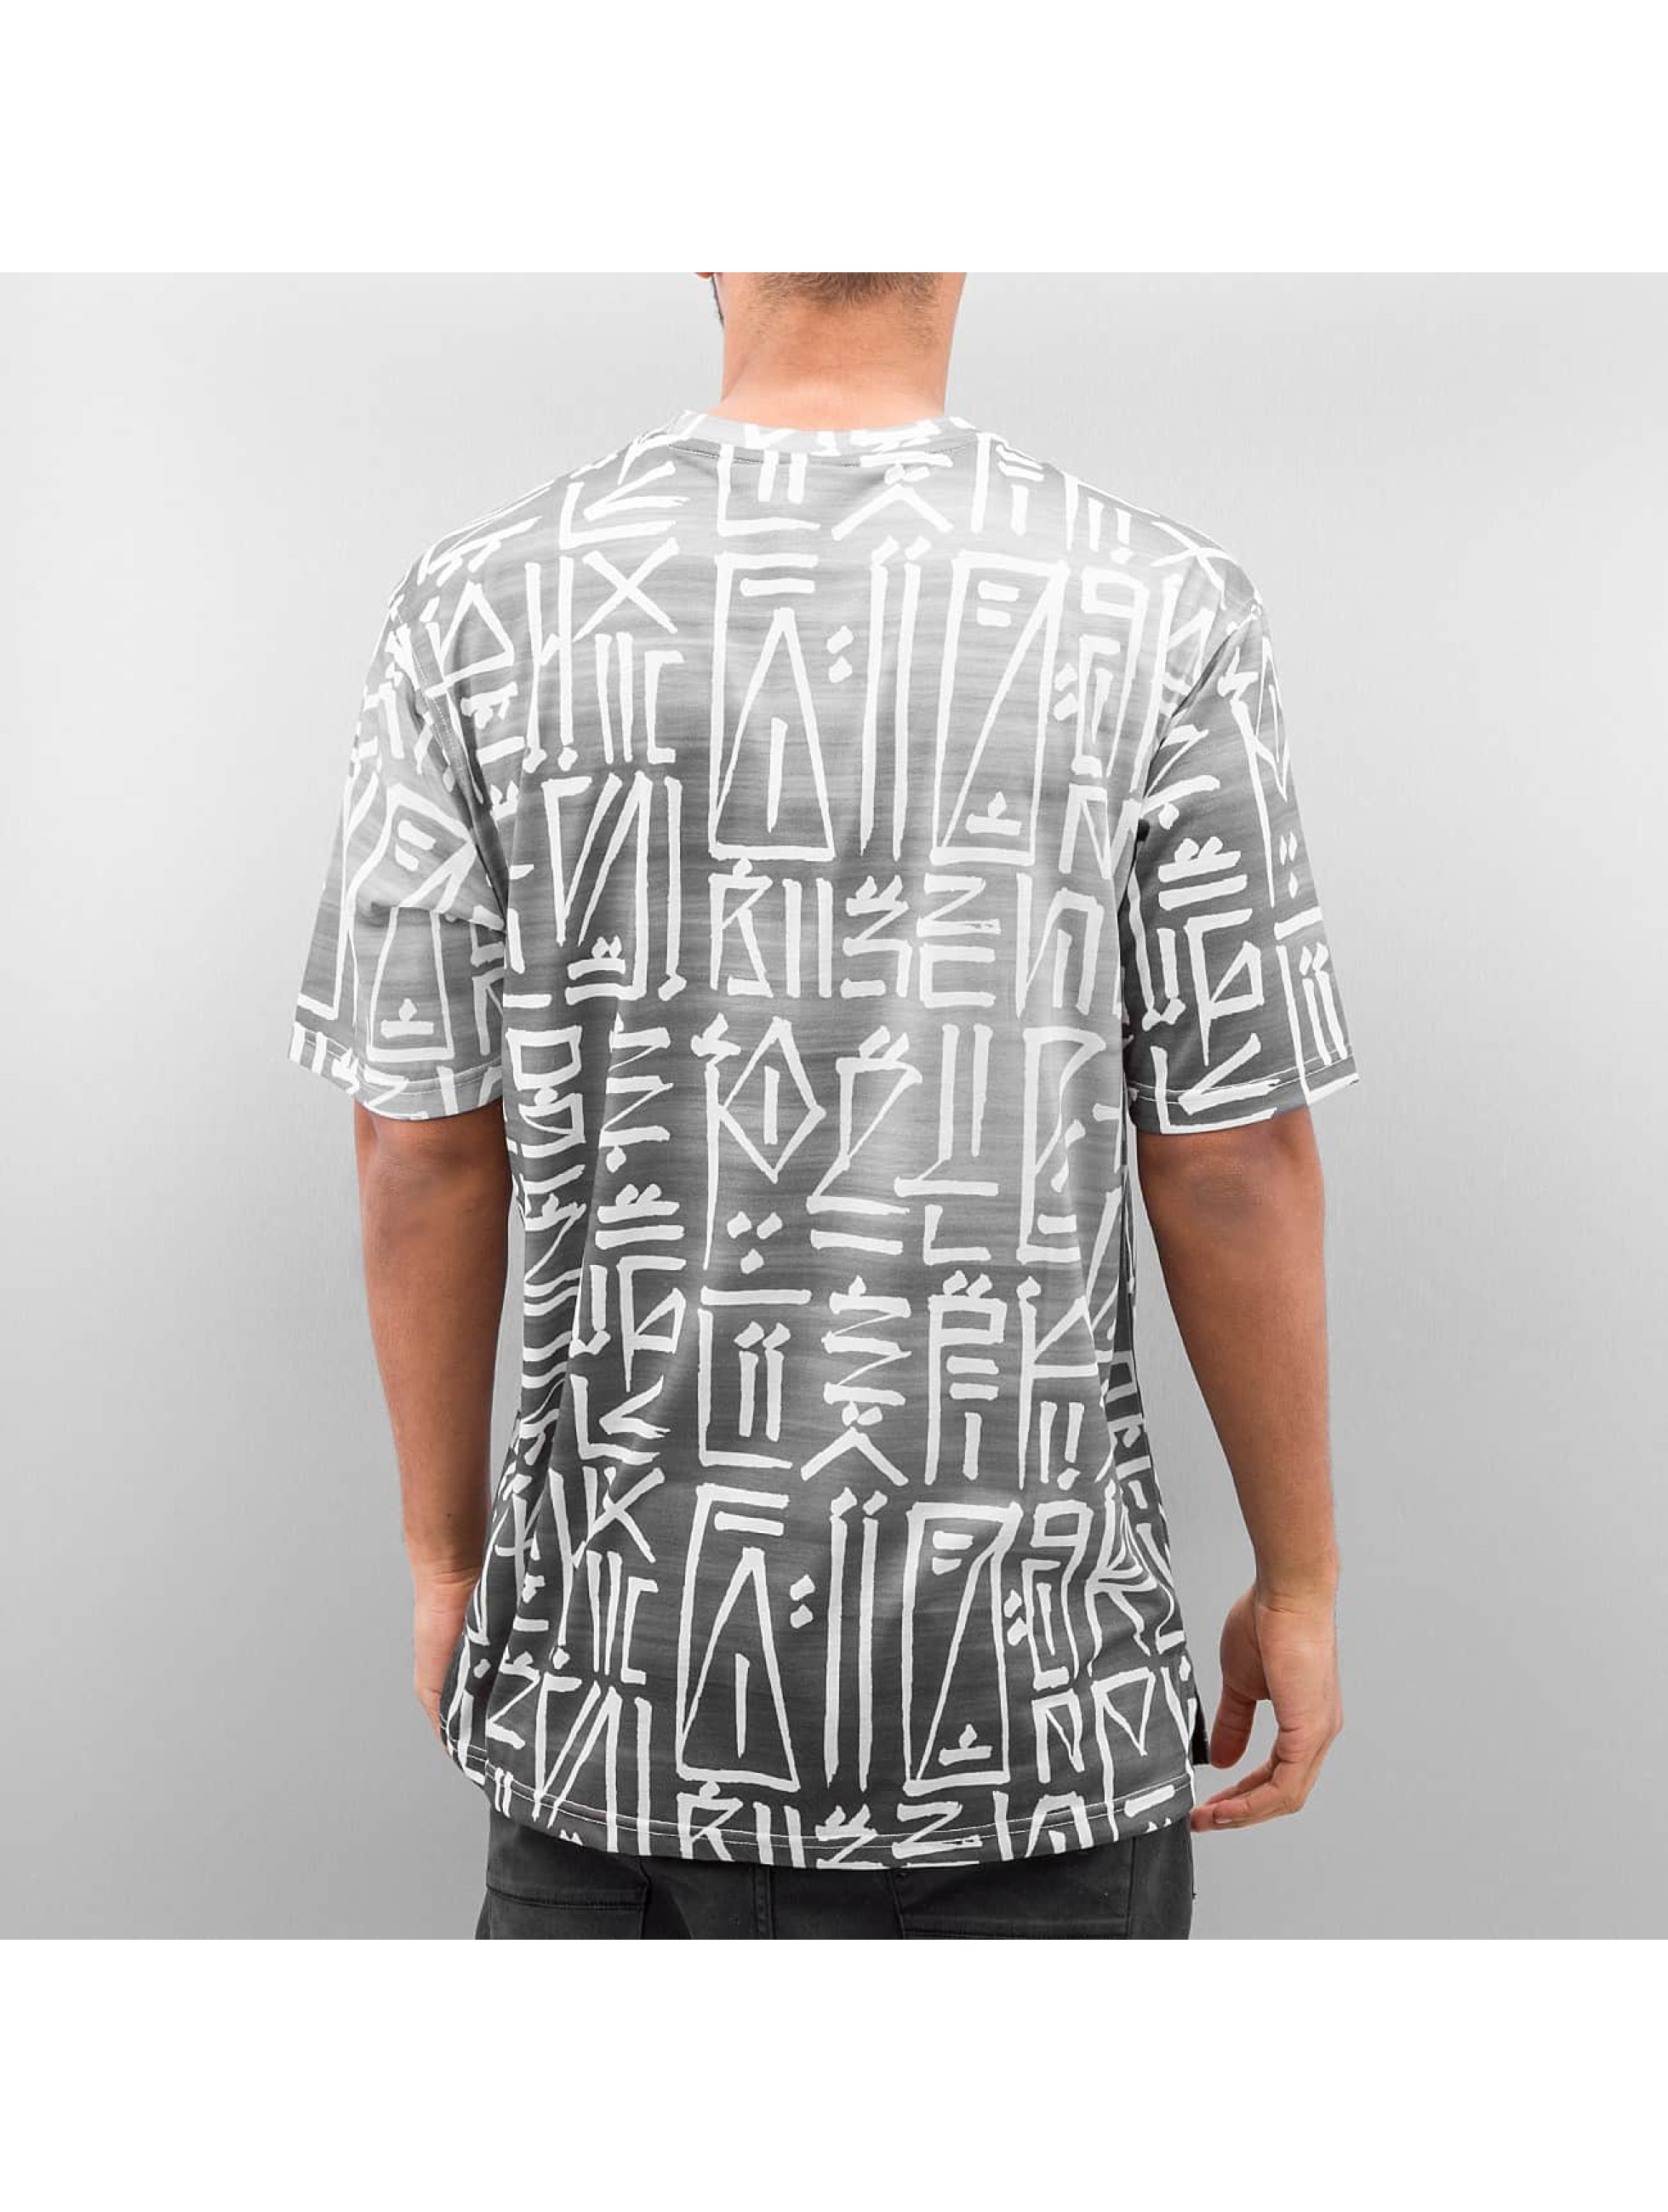 Pelle Pelle T-Shirt The Abstract grau